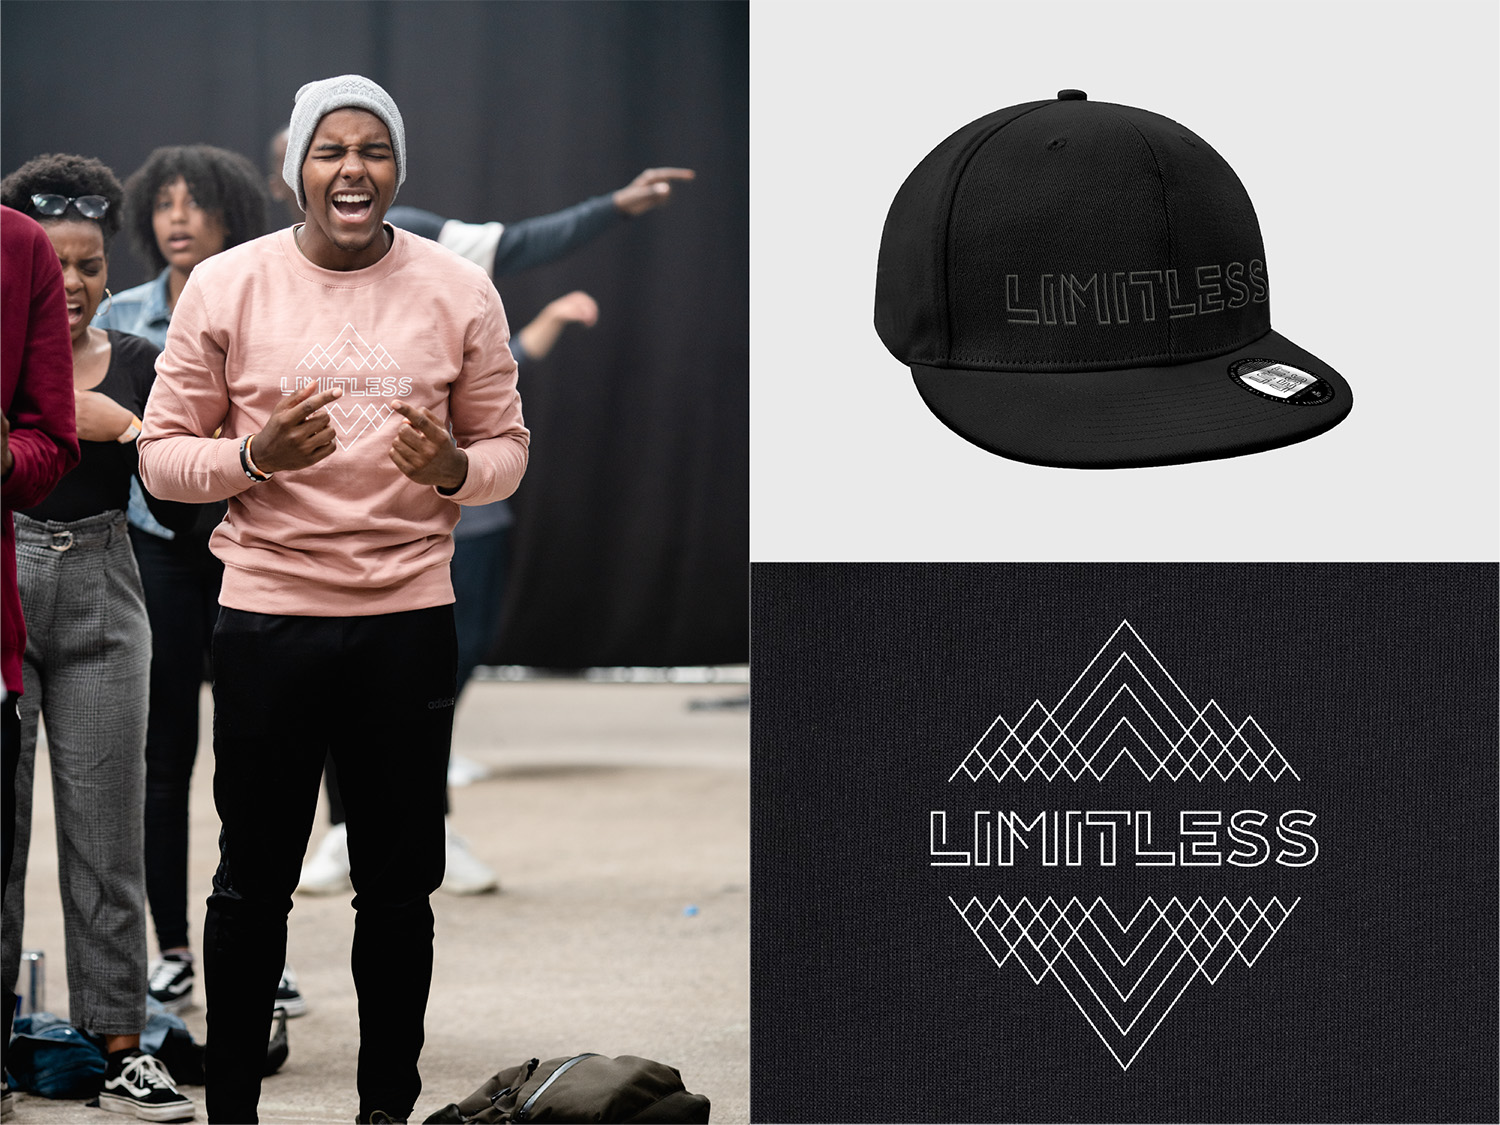 Limitless Merchandise Design